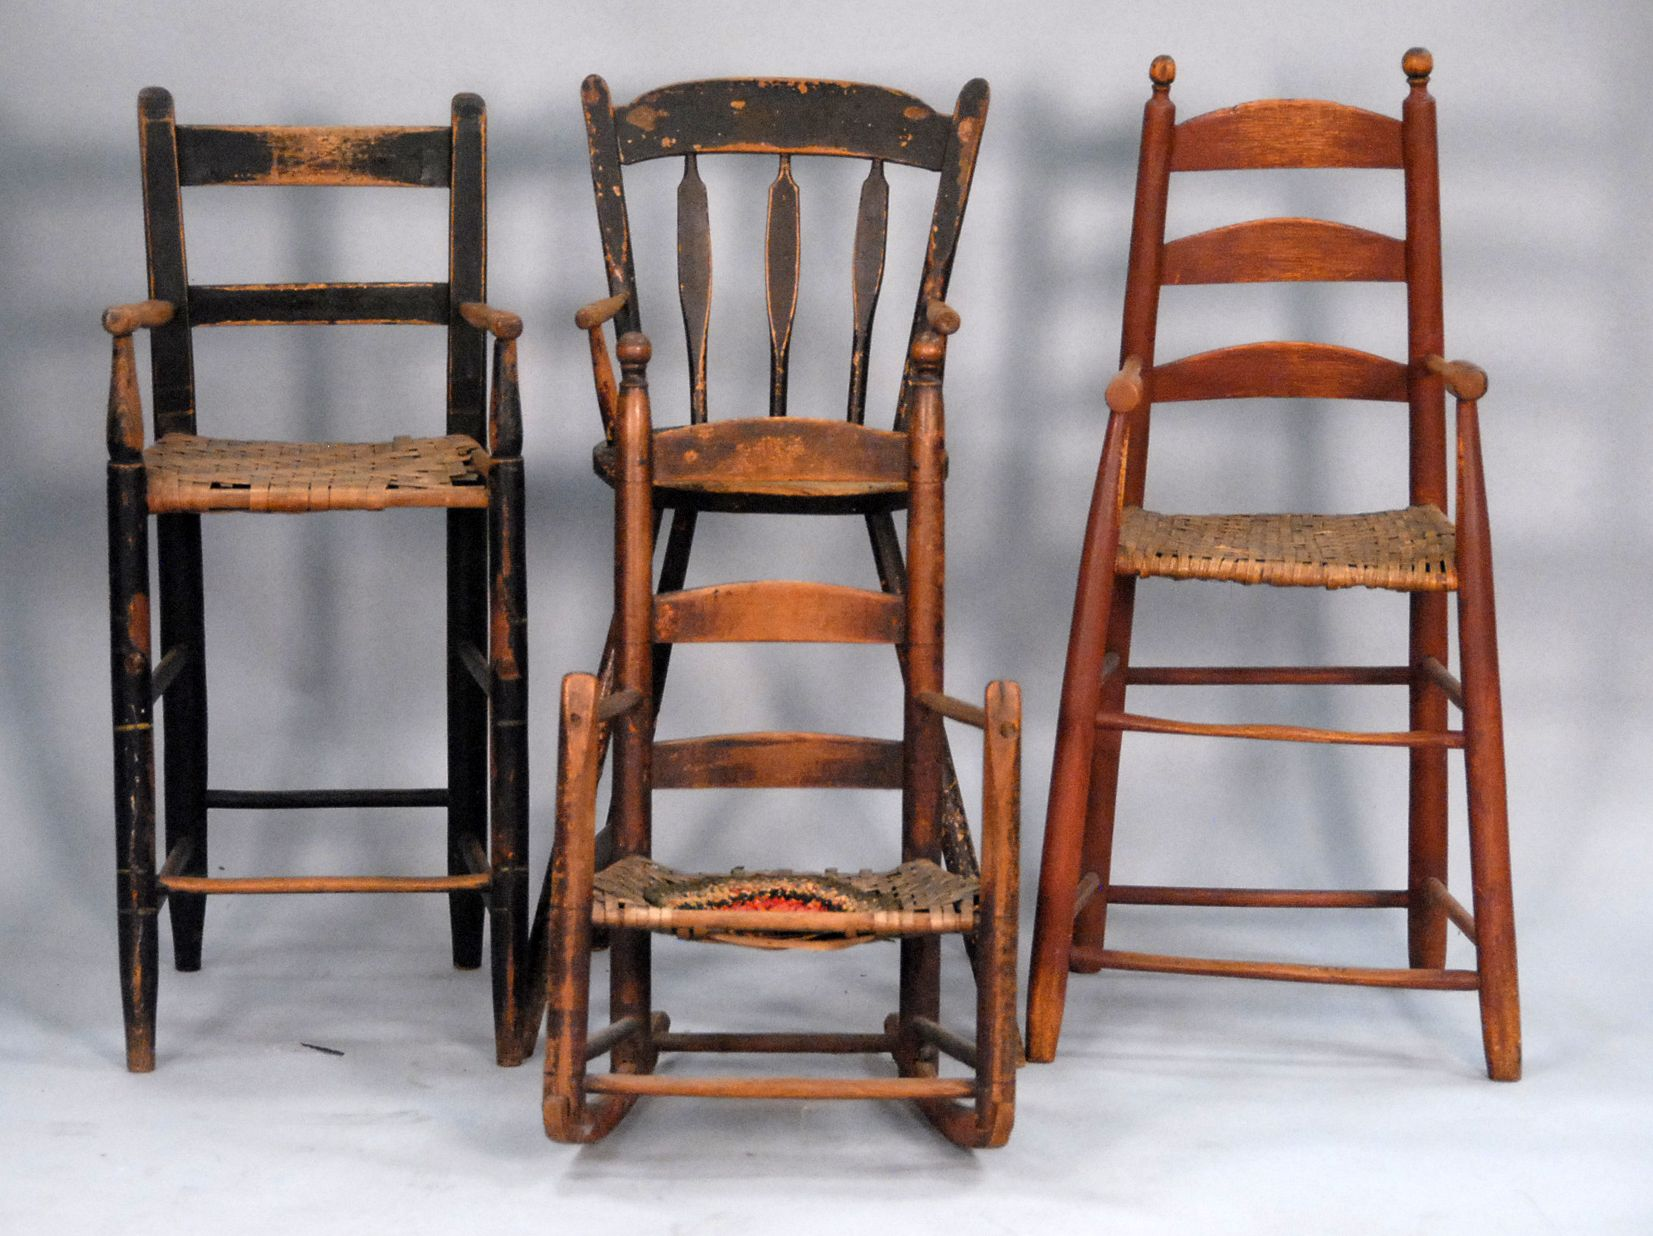 Four Various Primitive Youth Chairs To Include Three Tall